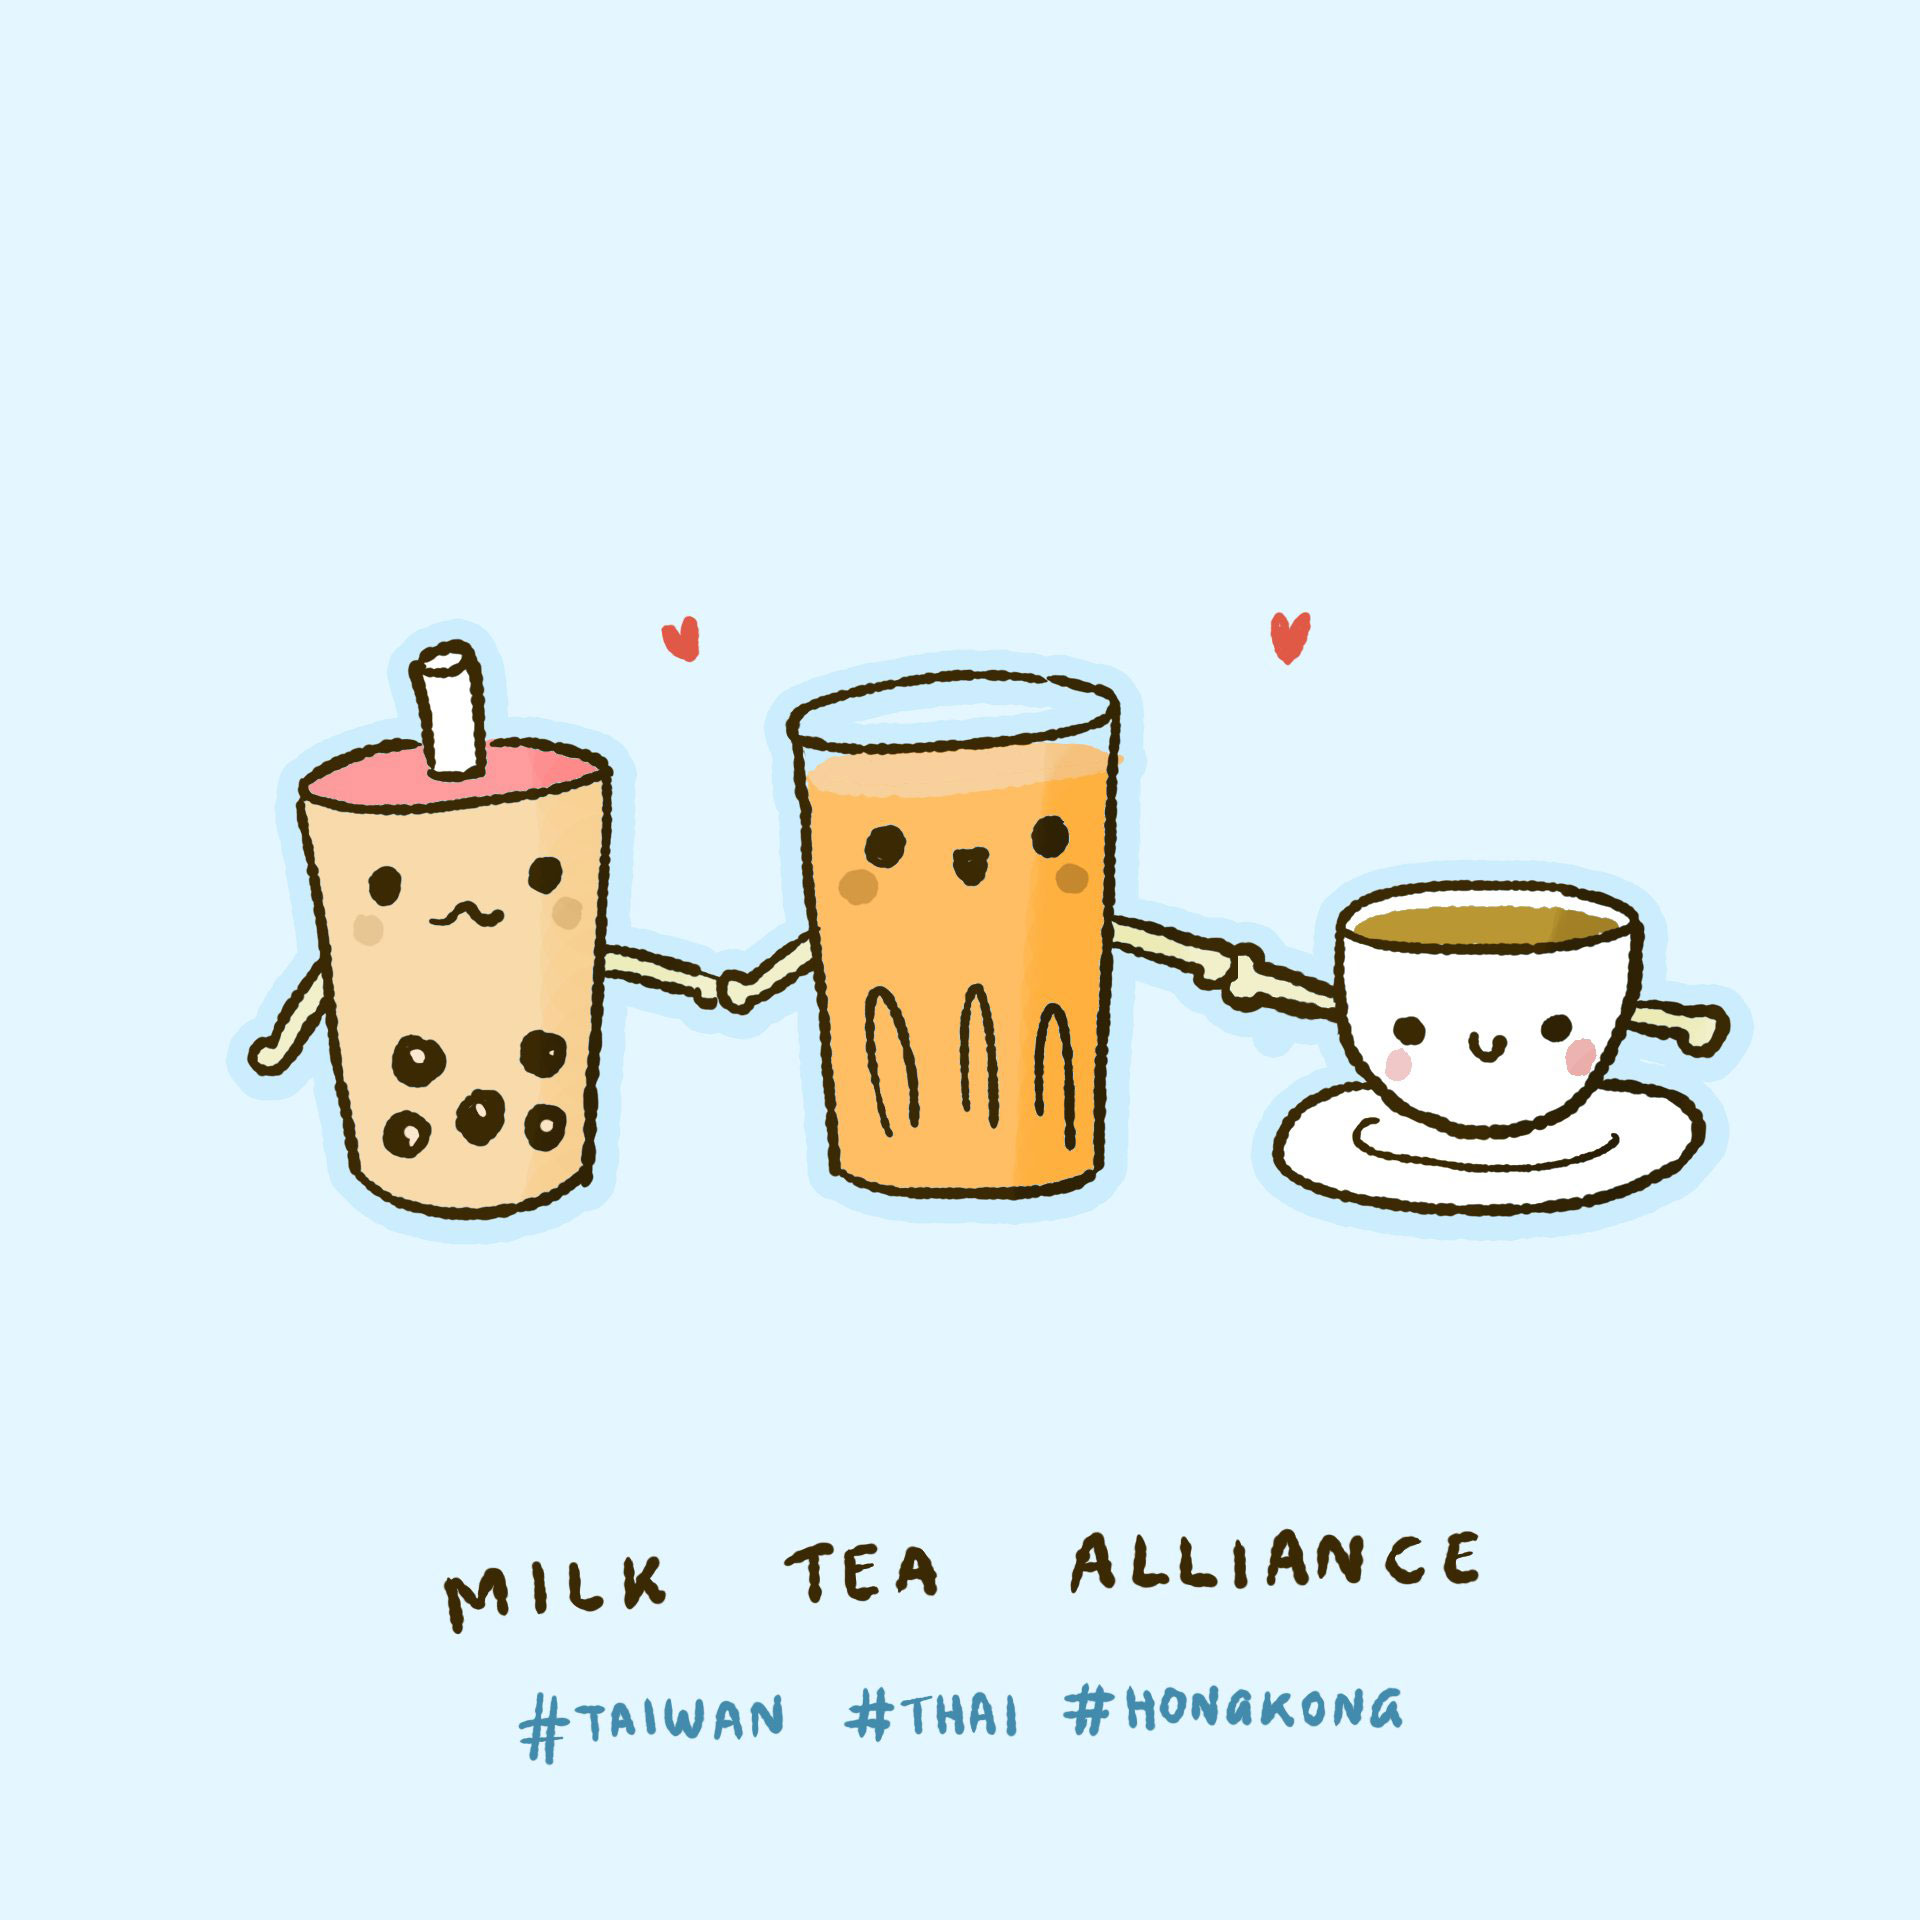 Internet meme that describes Milk Tea Alliance of activists in Thailand, Hong Kong and Taiwan challenging China and other authoritarian regimes.